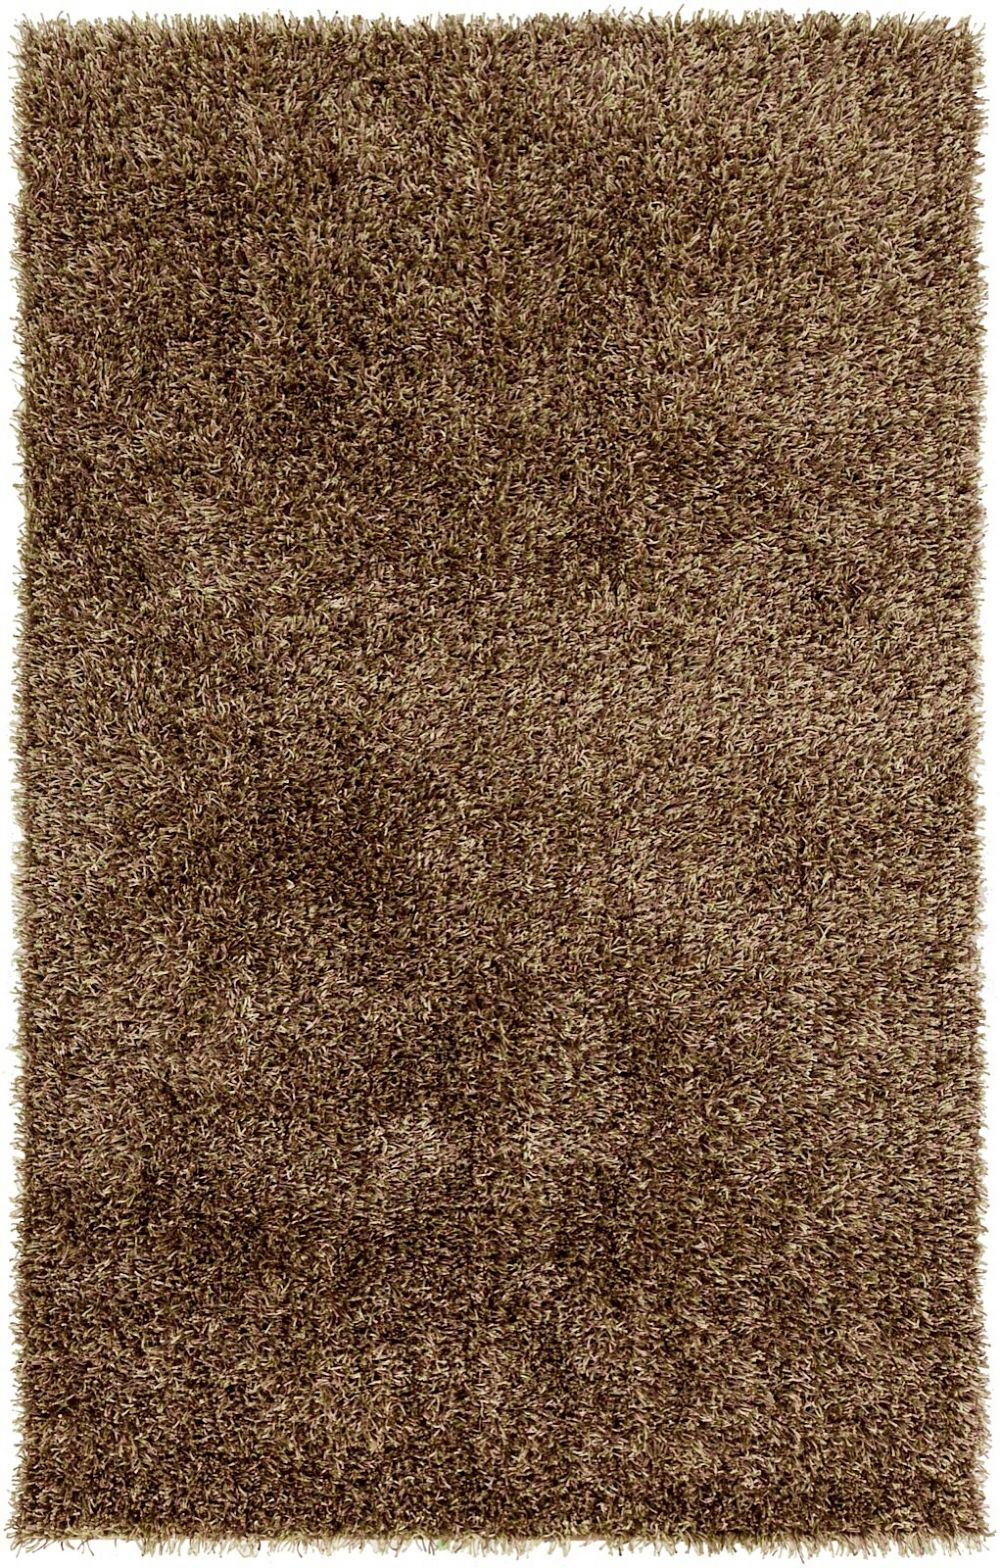 surya prism shag area rug collection